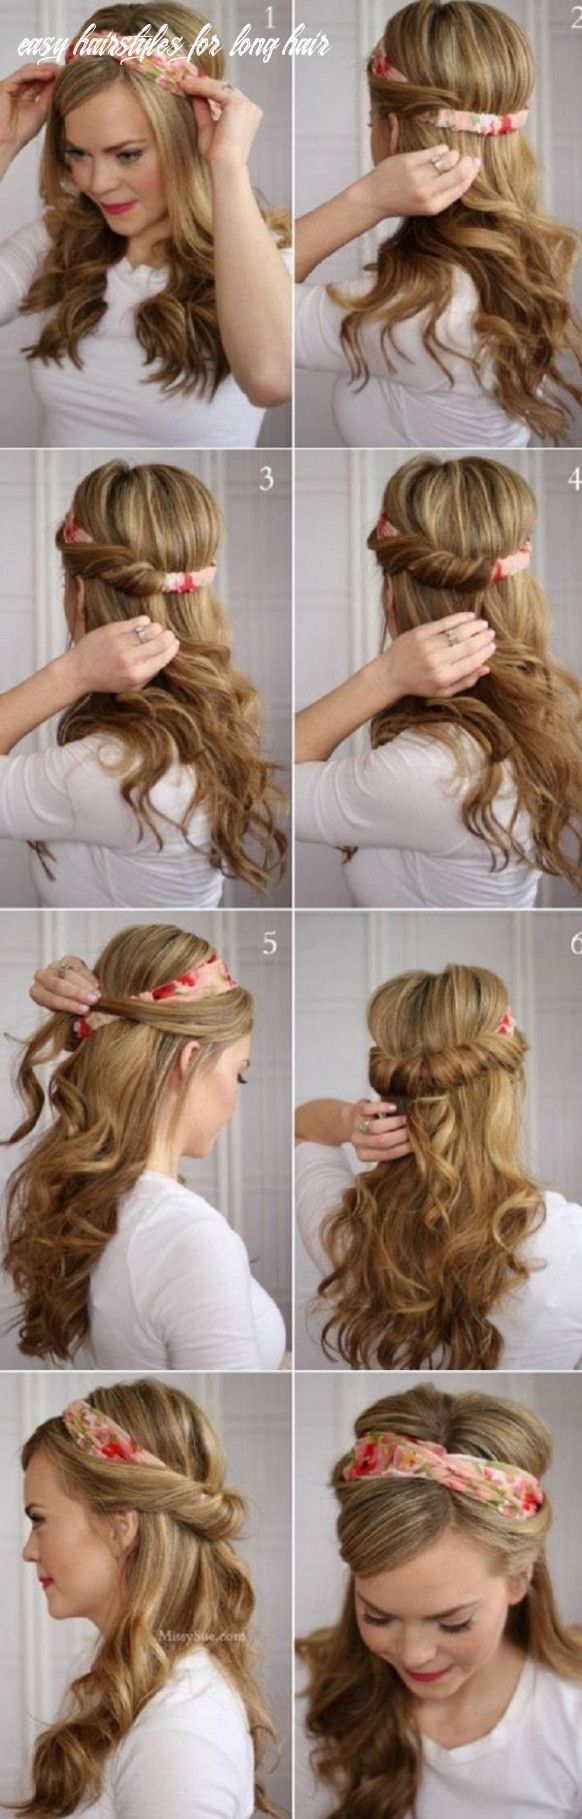 11 Easy Hairstyles for long hair | Cuded